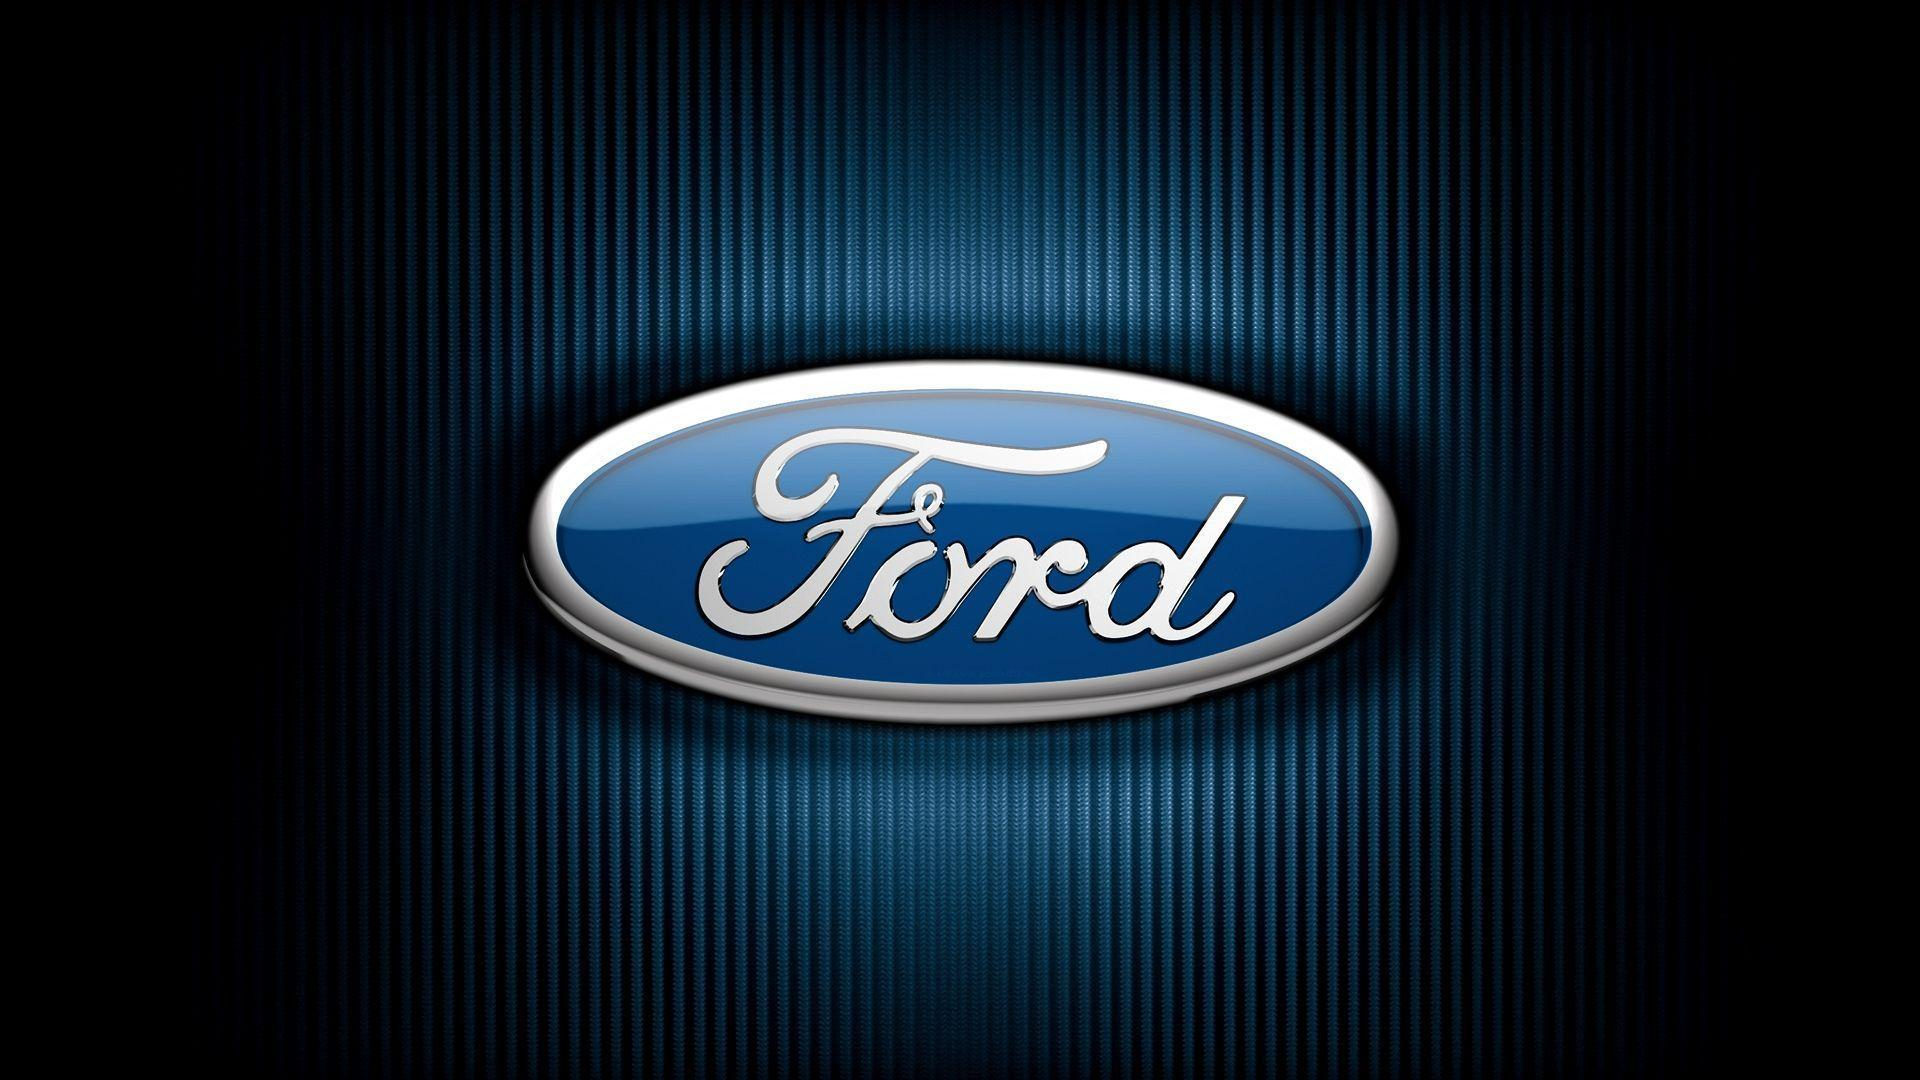 Ford logo wallpapers wallpaper cave cool ford logo wallpaper 8806 hdwidescreens voltagebd Images